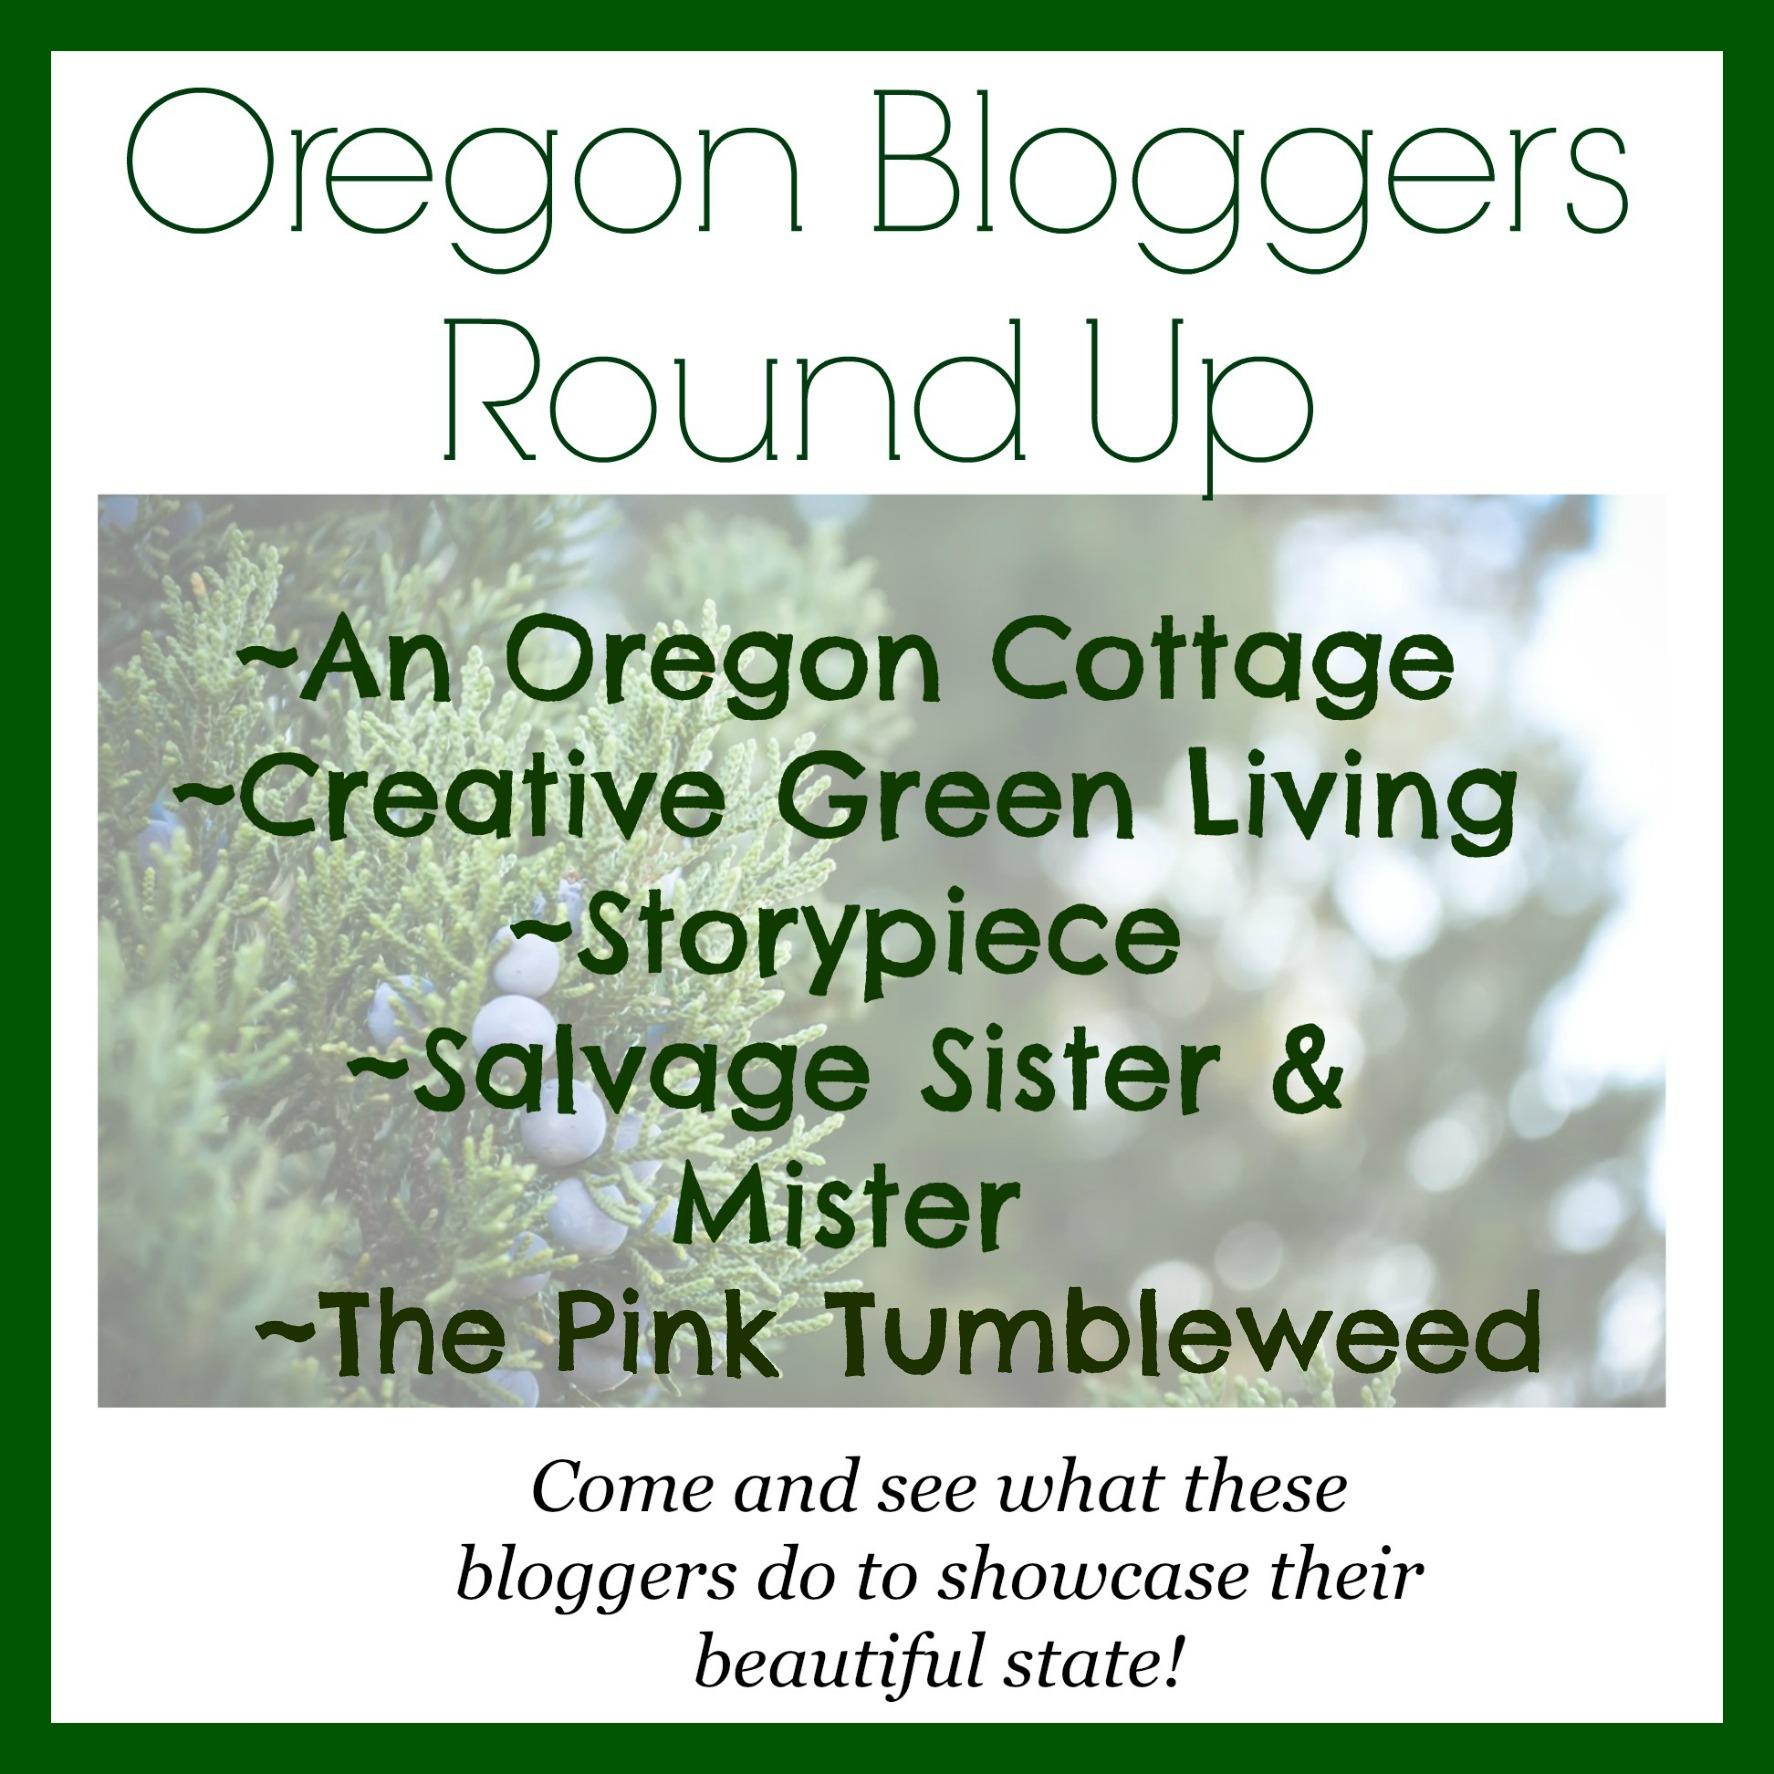 We have joined several Oregon Bloggers to share some crafts, DIY projects, and recipes that showcase our beautiful state. #statepride We love where we live and can't wait to show you all about it.